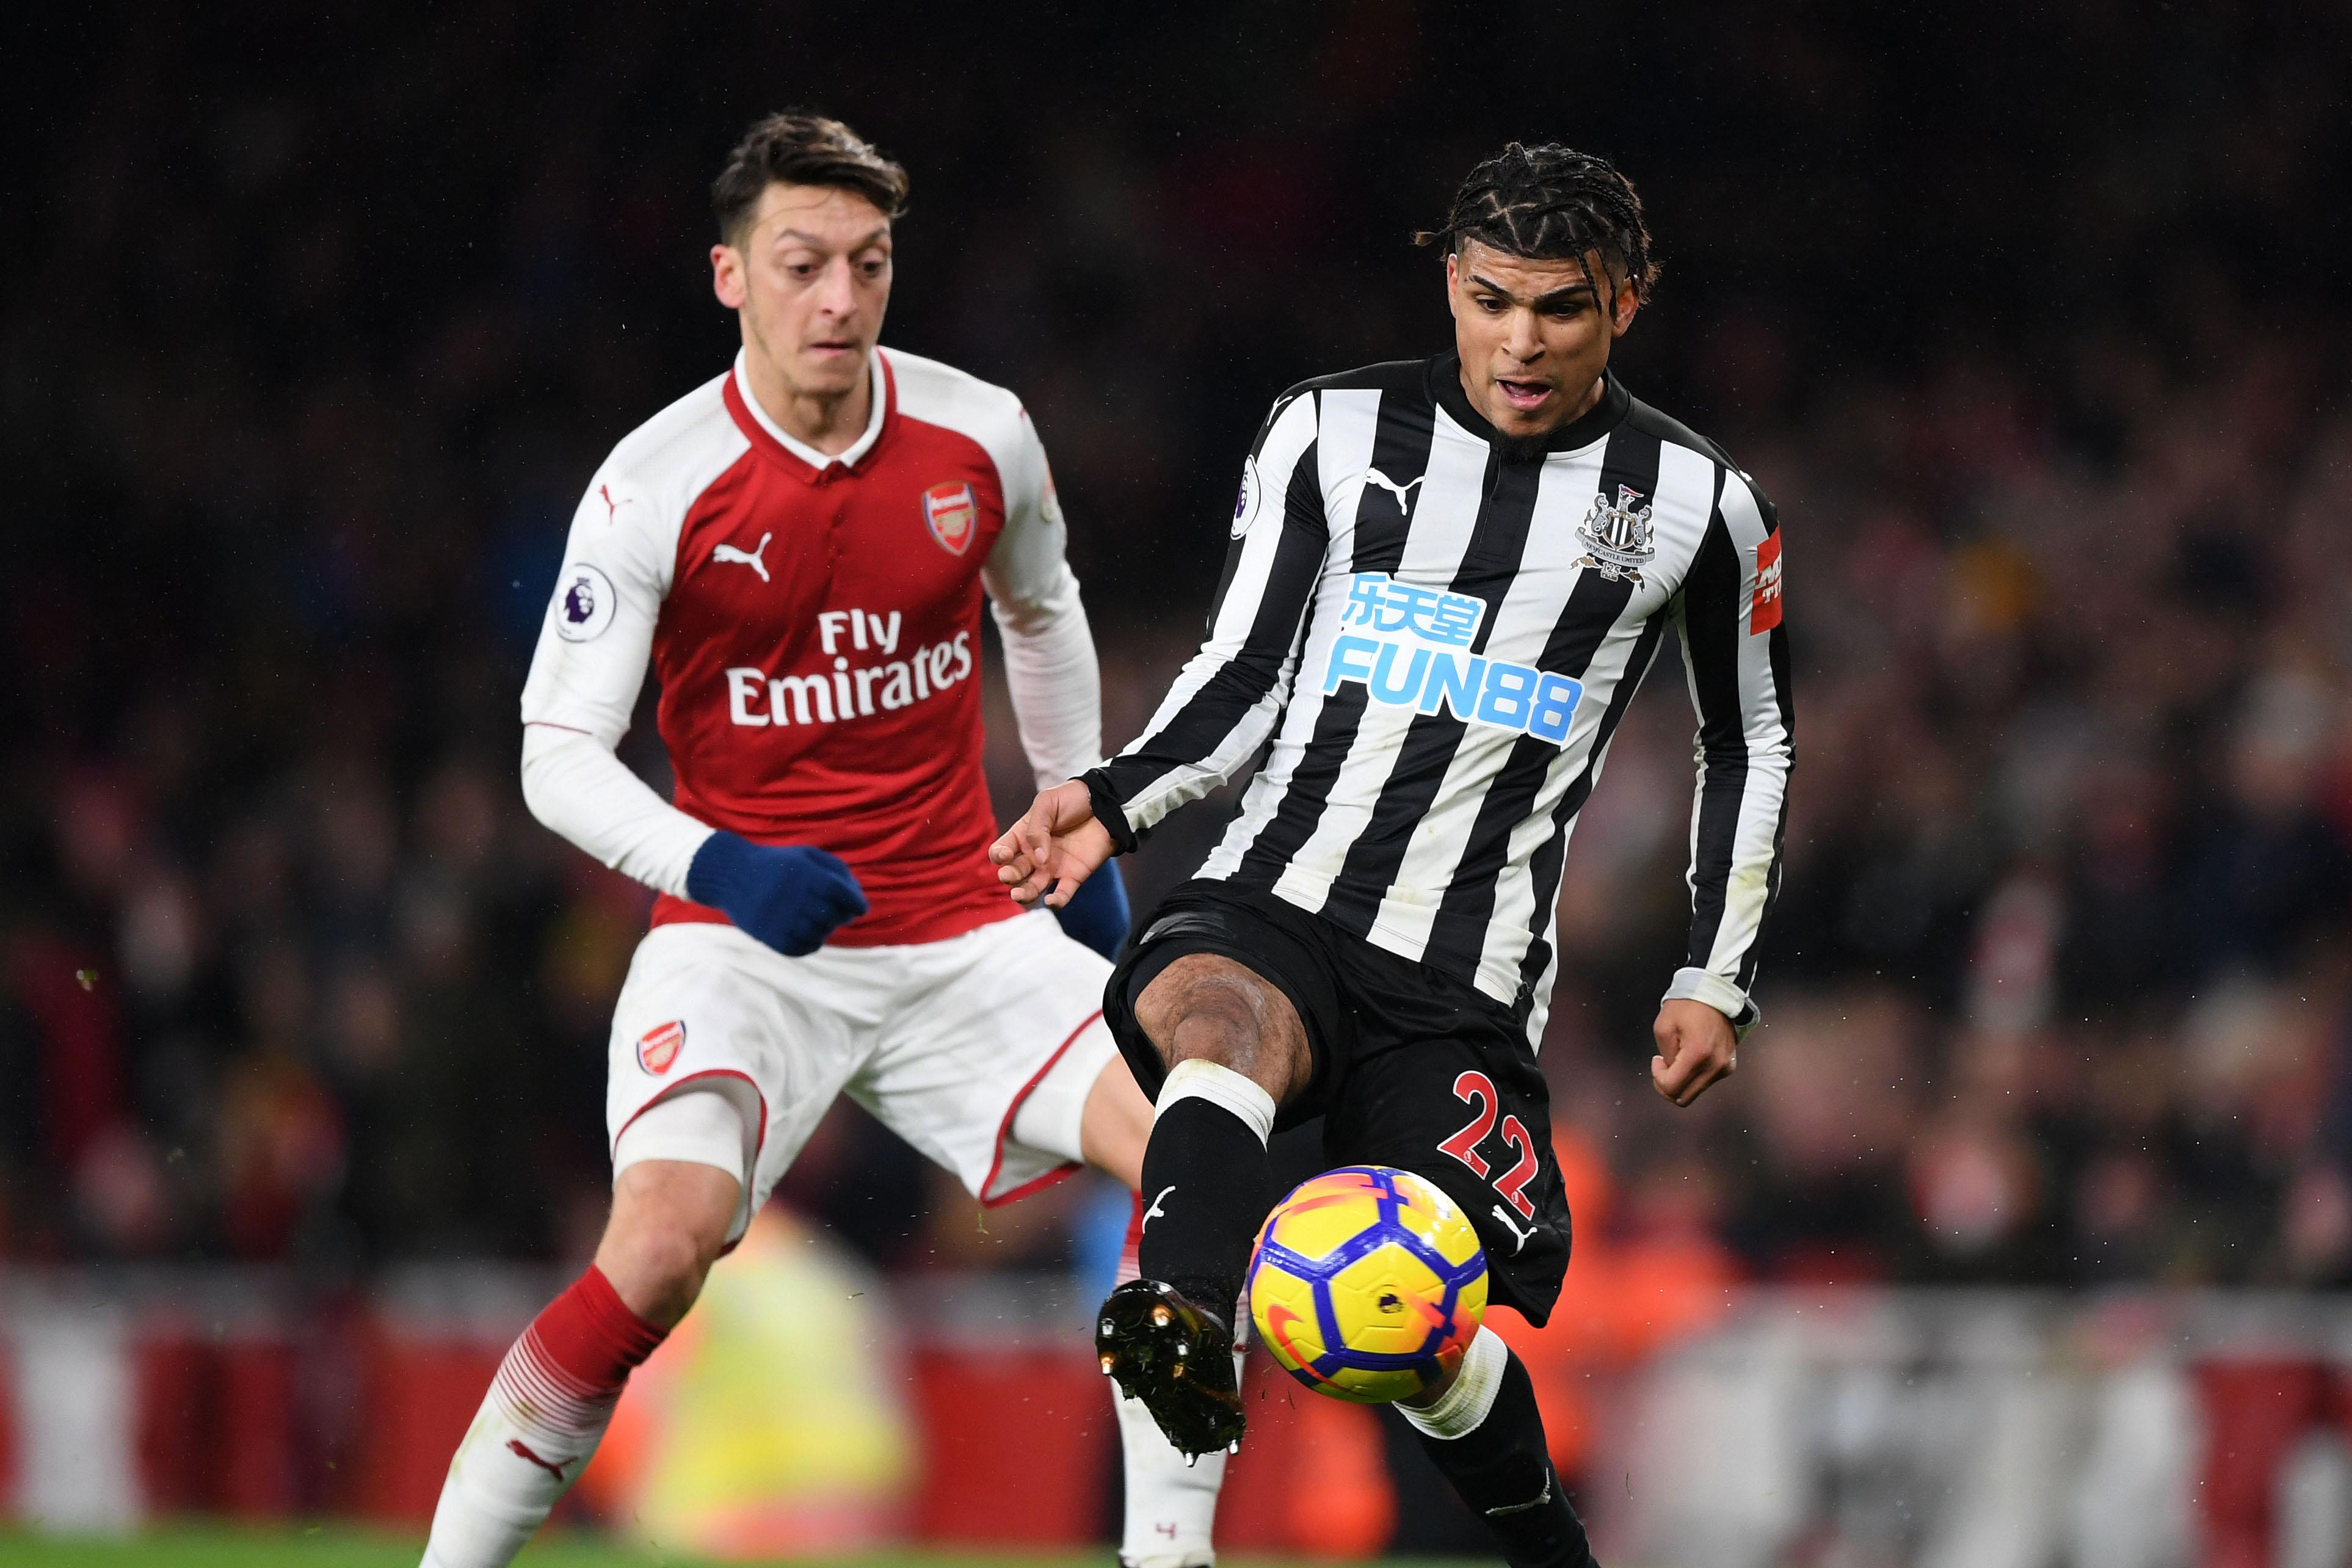 Newcastle host Arsenal at 3pm on Saturday